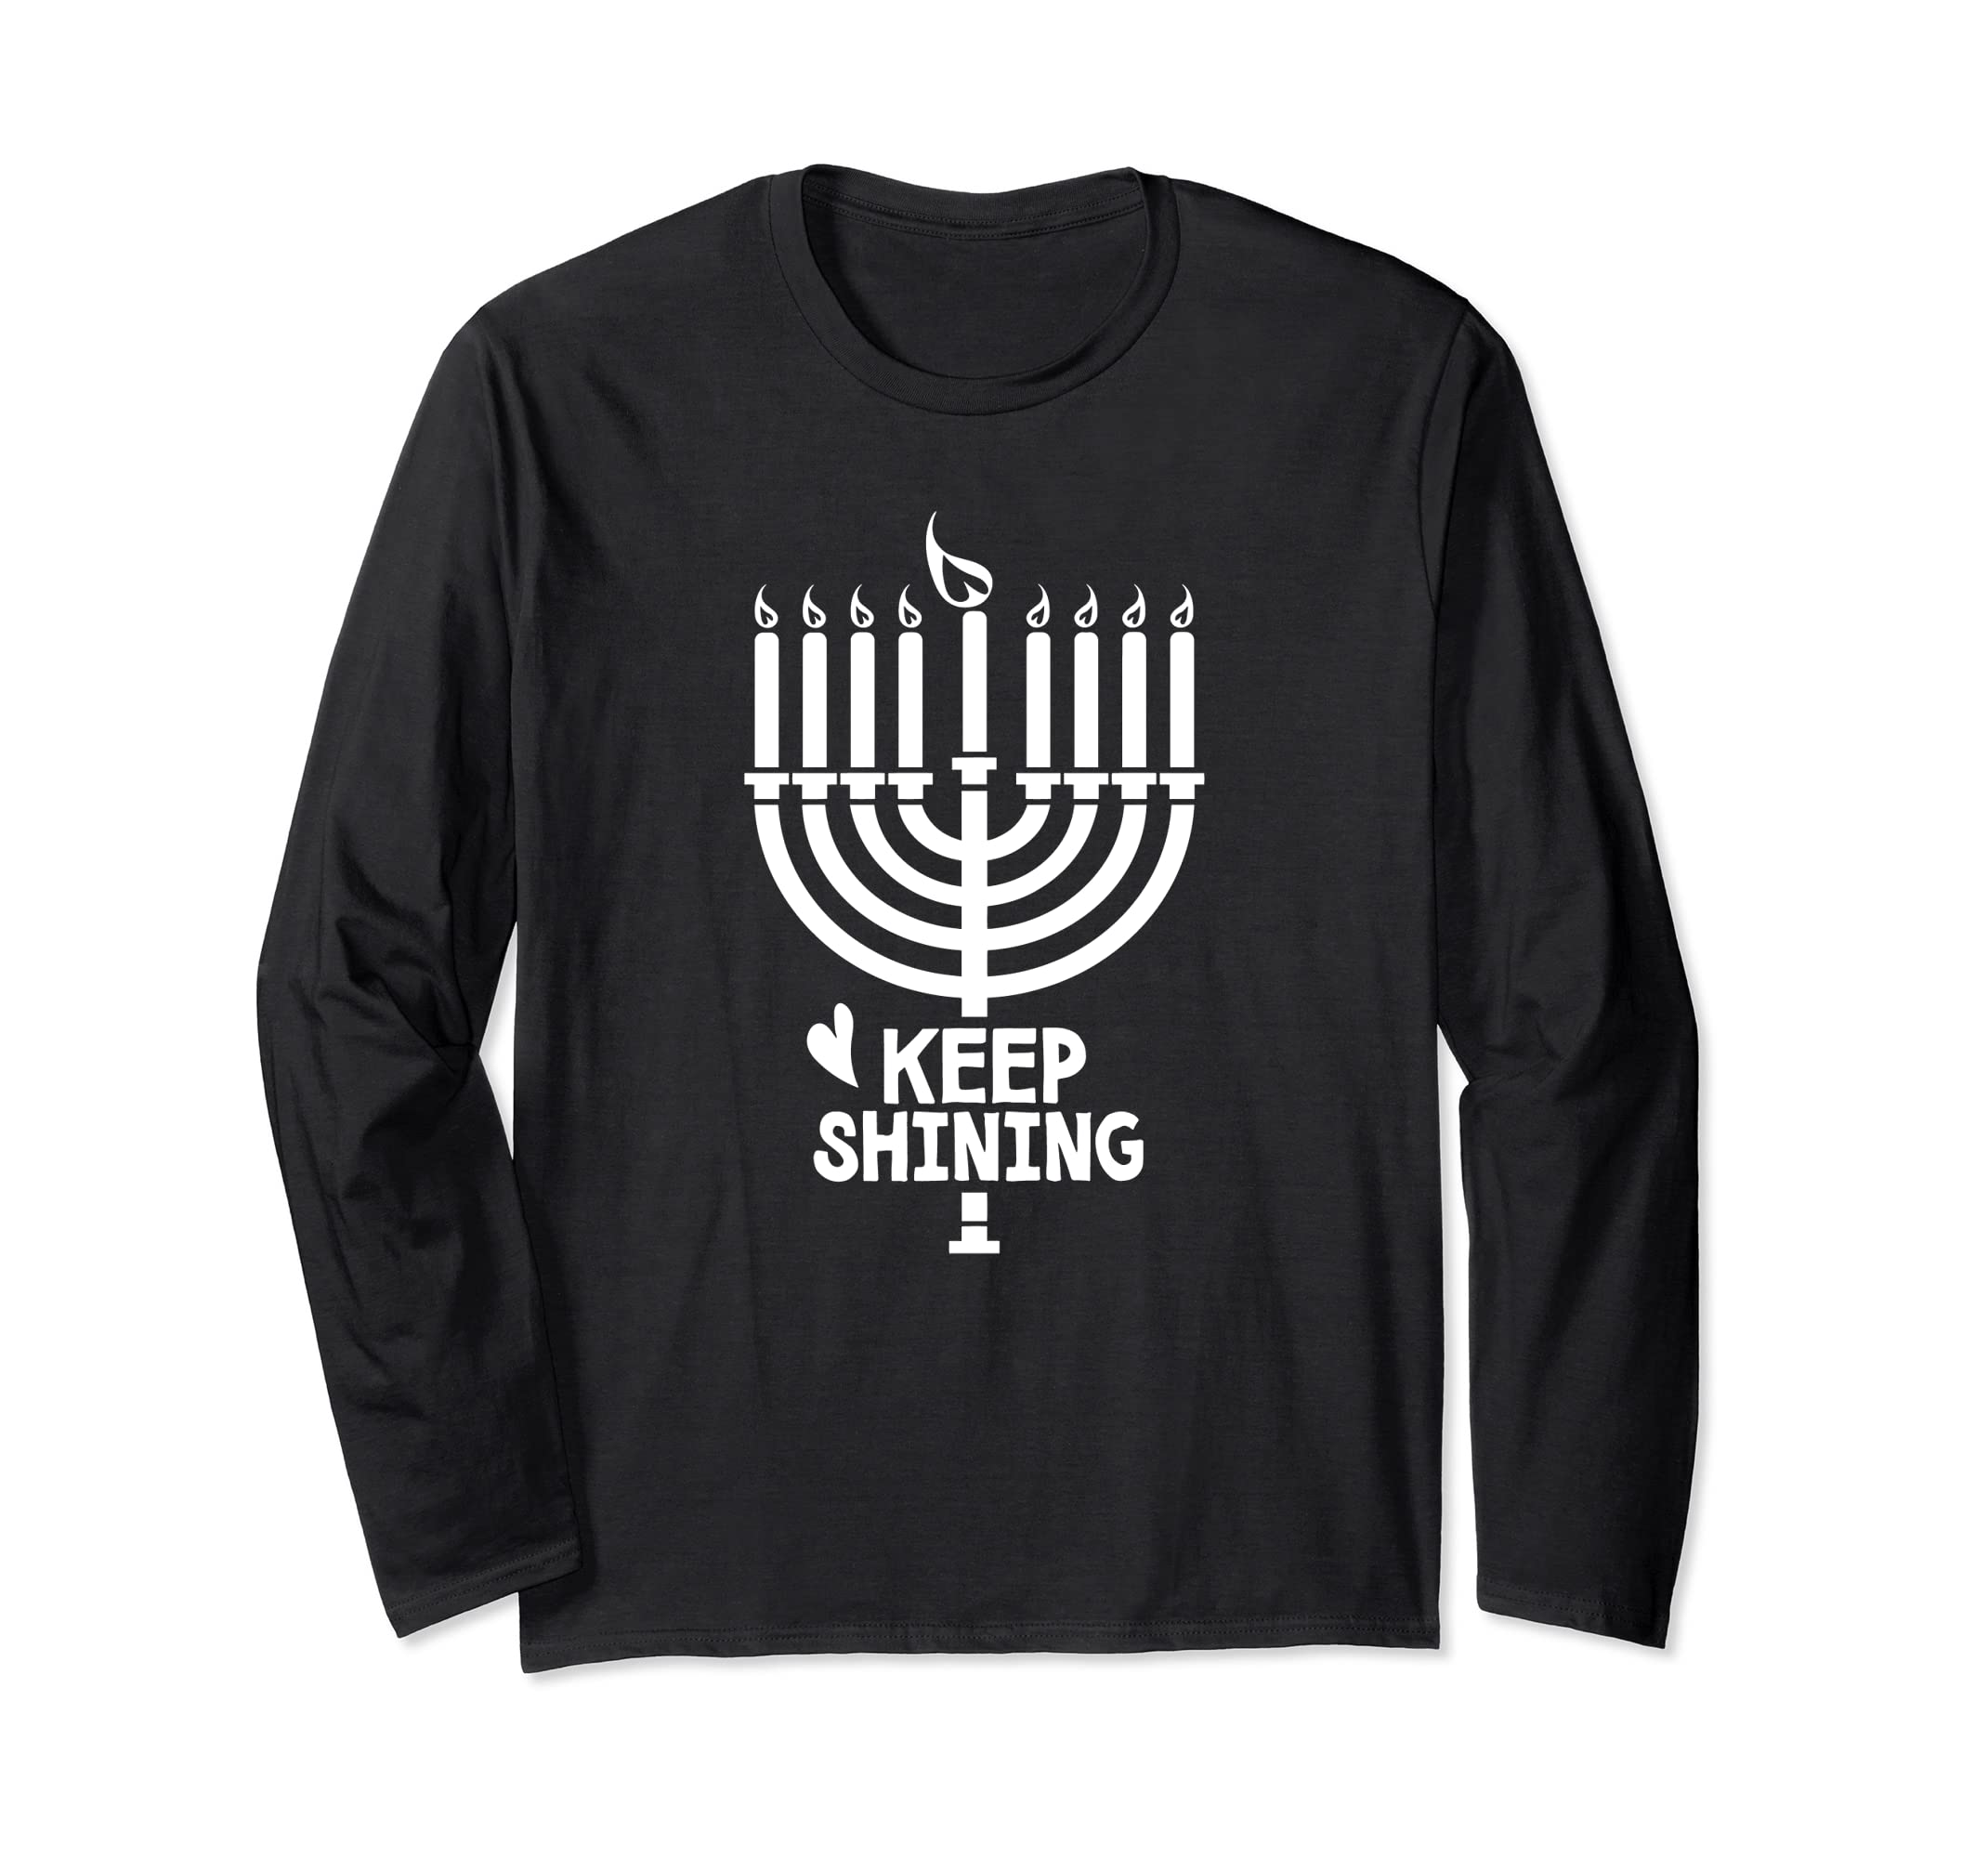 Free To Be Kids Hanukkah Shirt, Menorah Candles Holiday-SFL